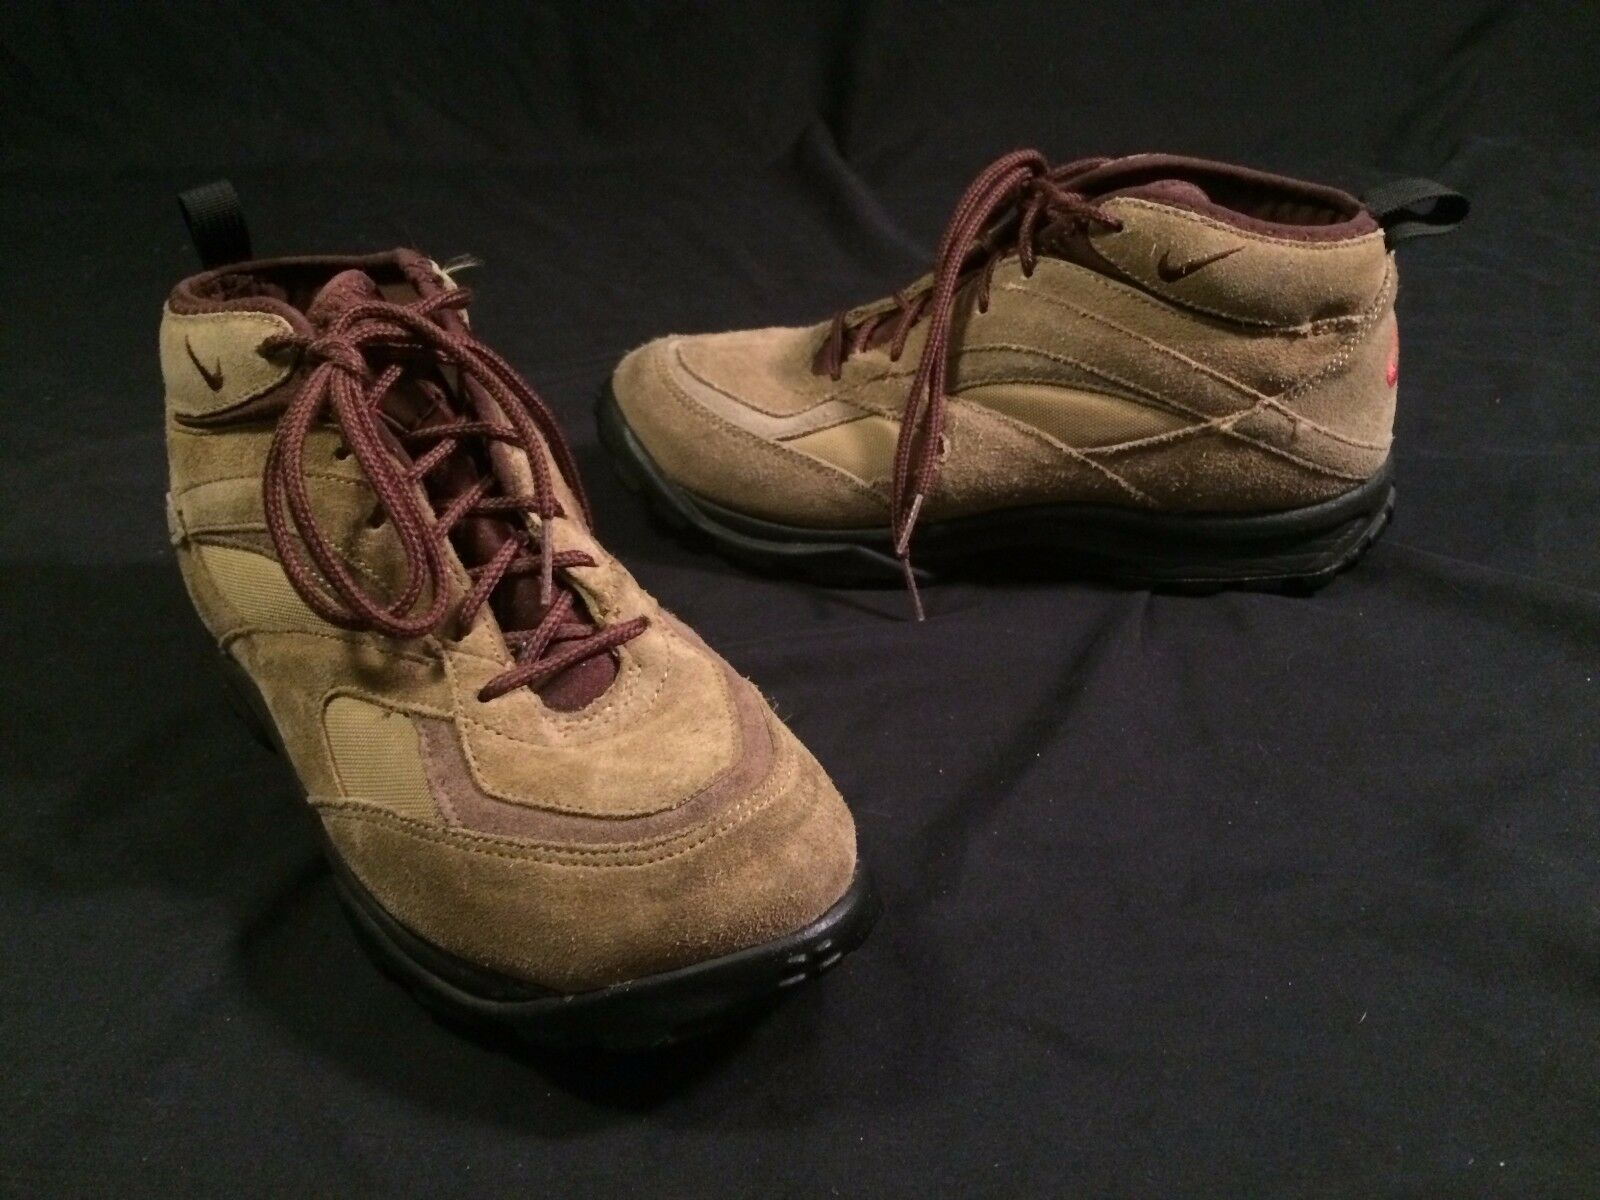 VTG VTG VTG NIKE HIKING BOOTS MENS SIZE 8.5 BROWN BLACK TRAIL CLIMBER 80'S 1980'S ad5343